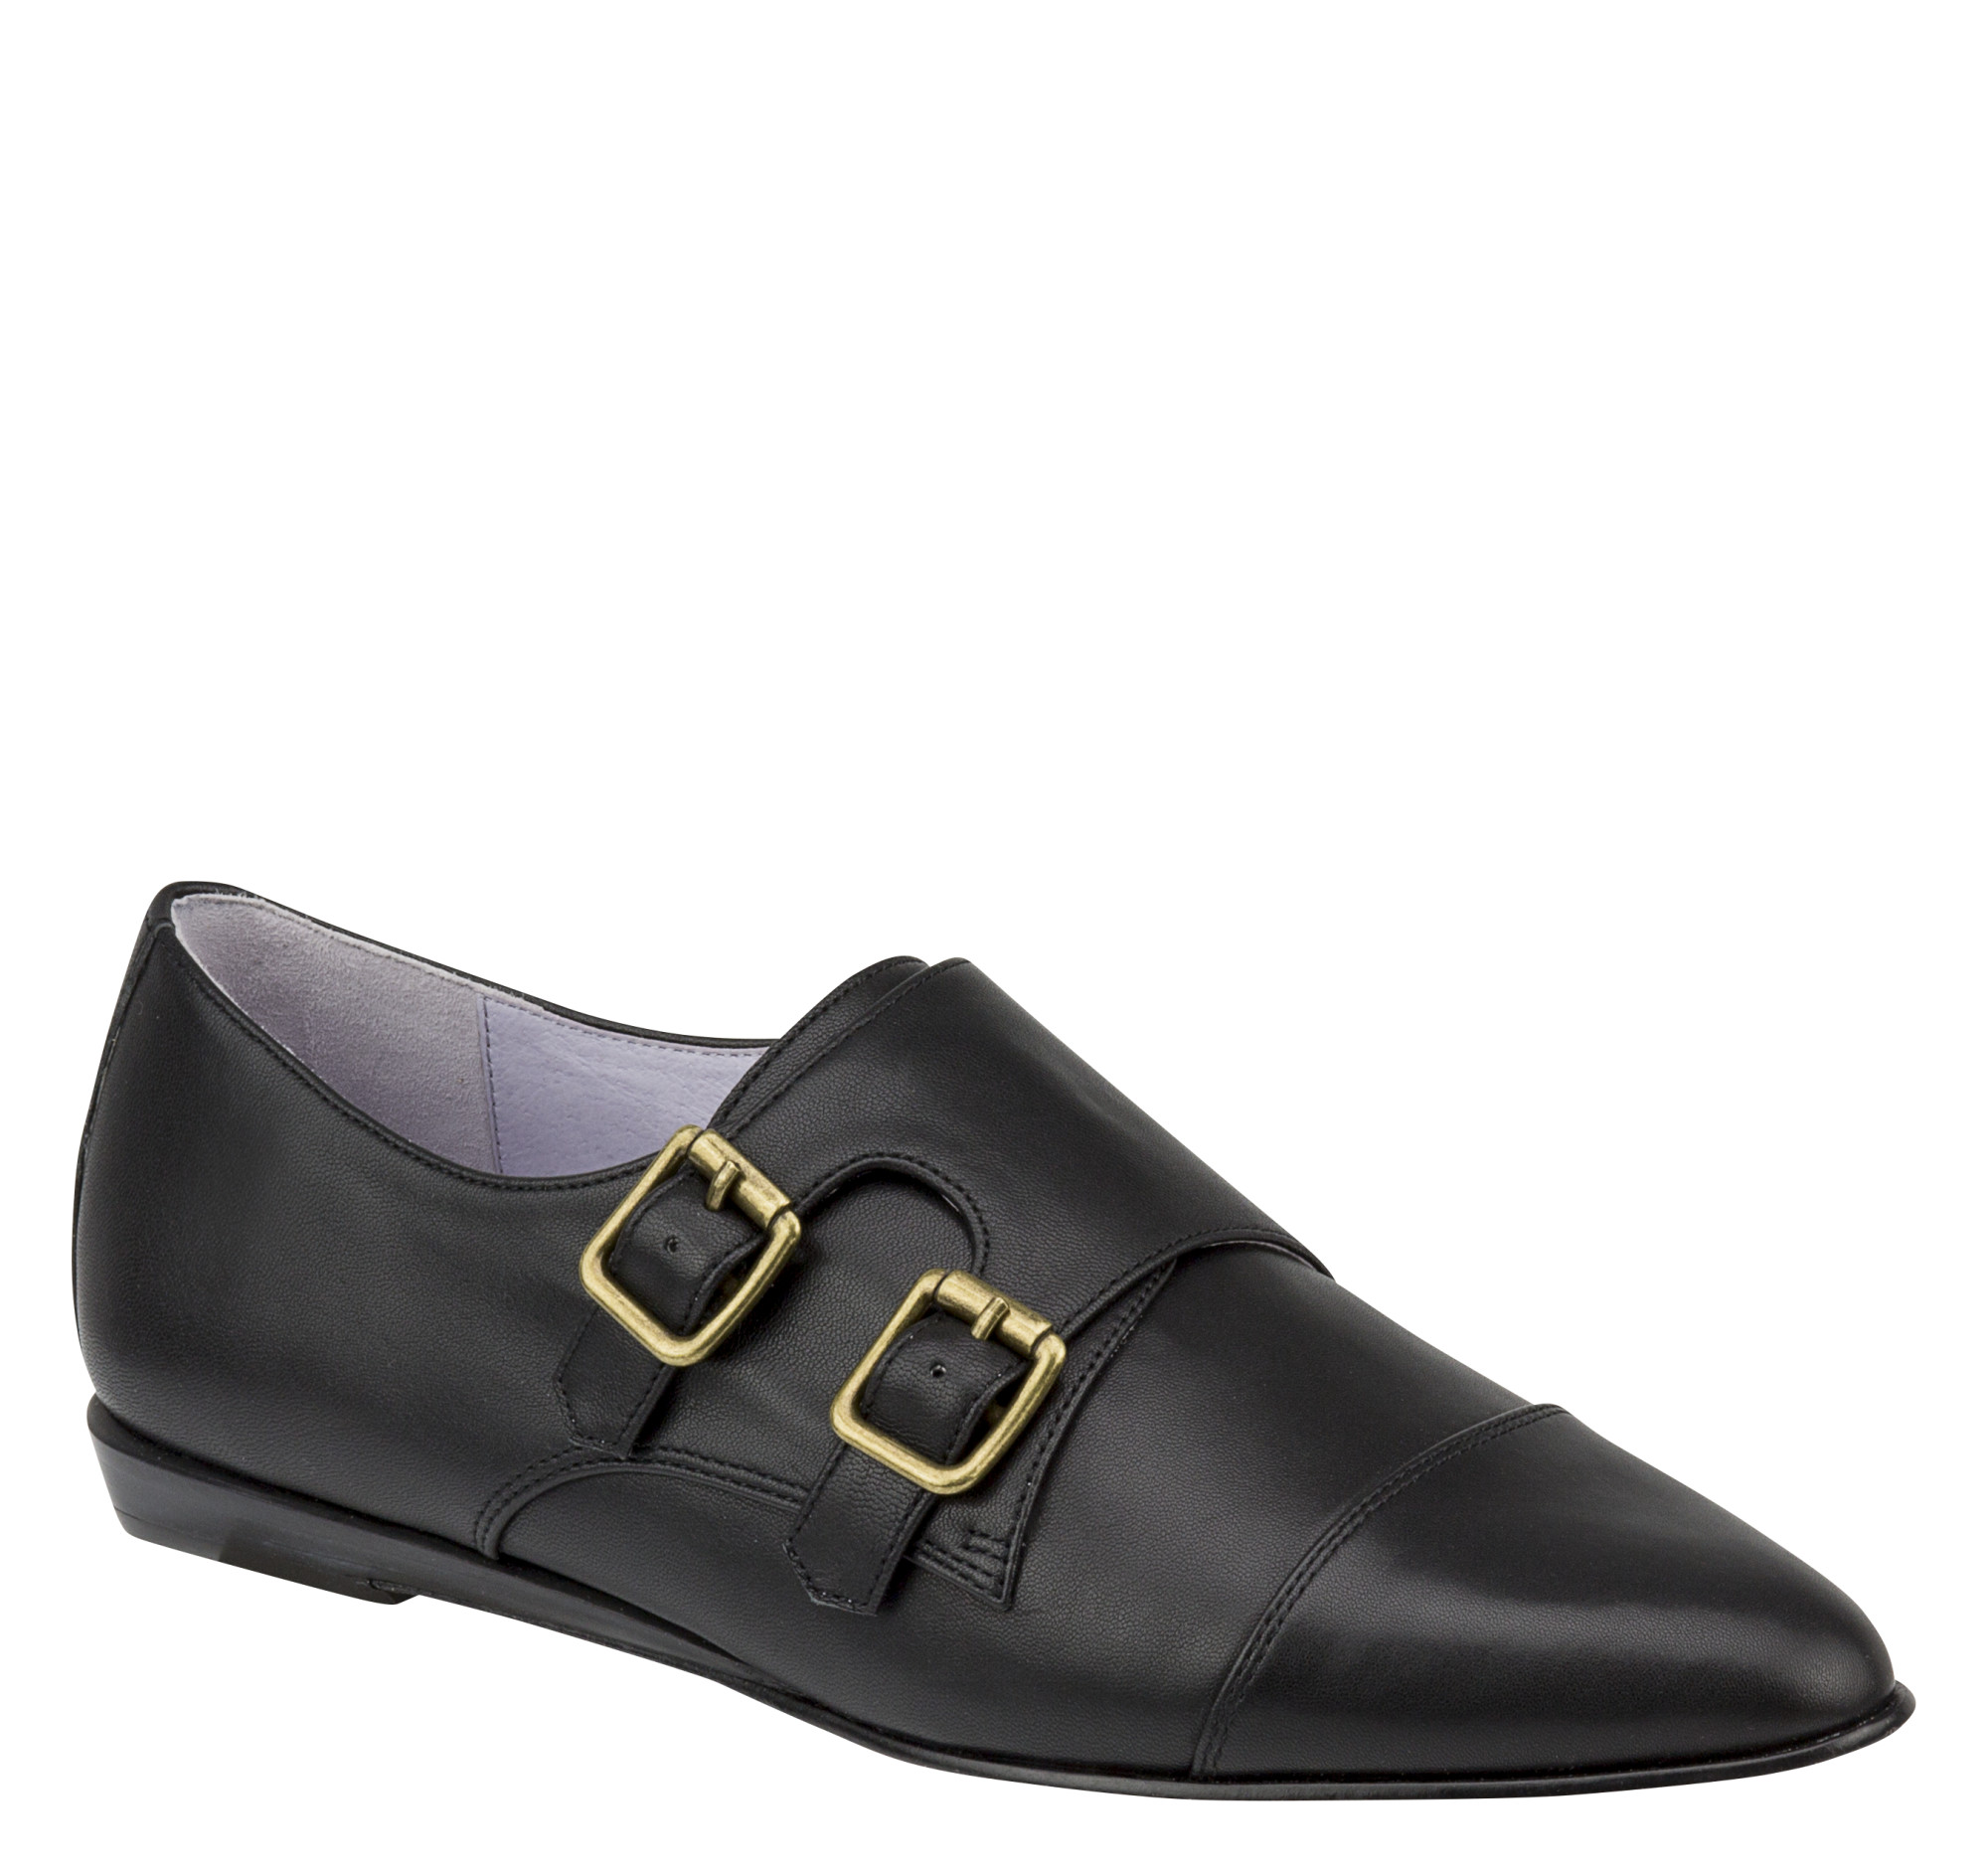 Jade Monk Strap - Johnston & Murphy